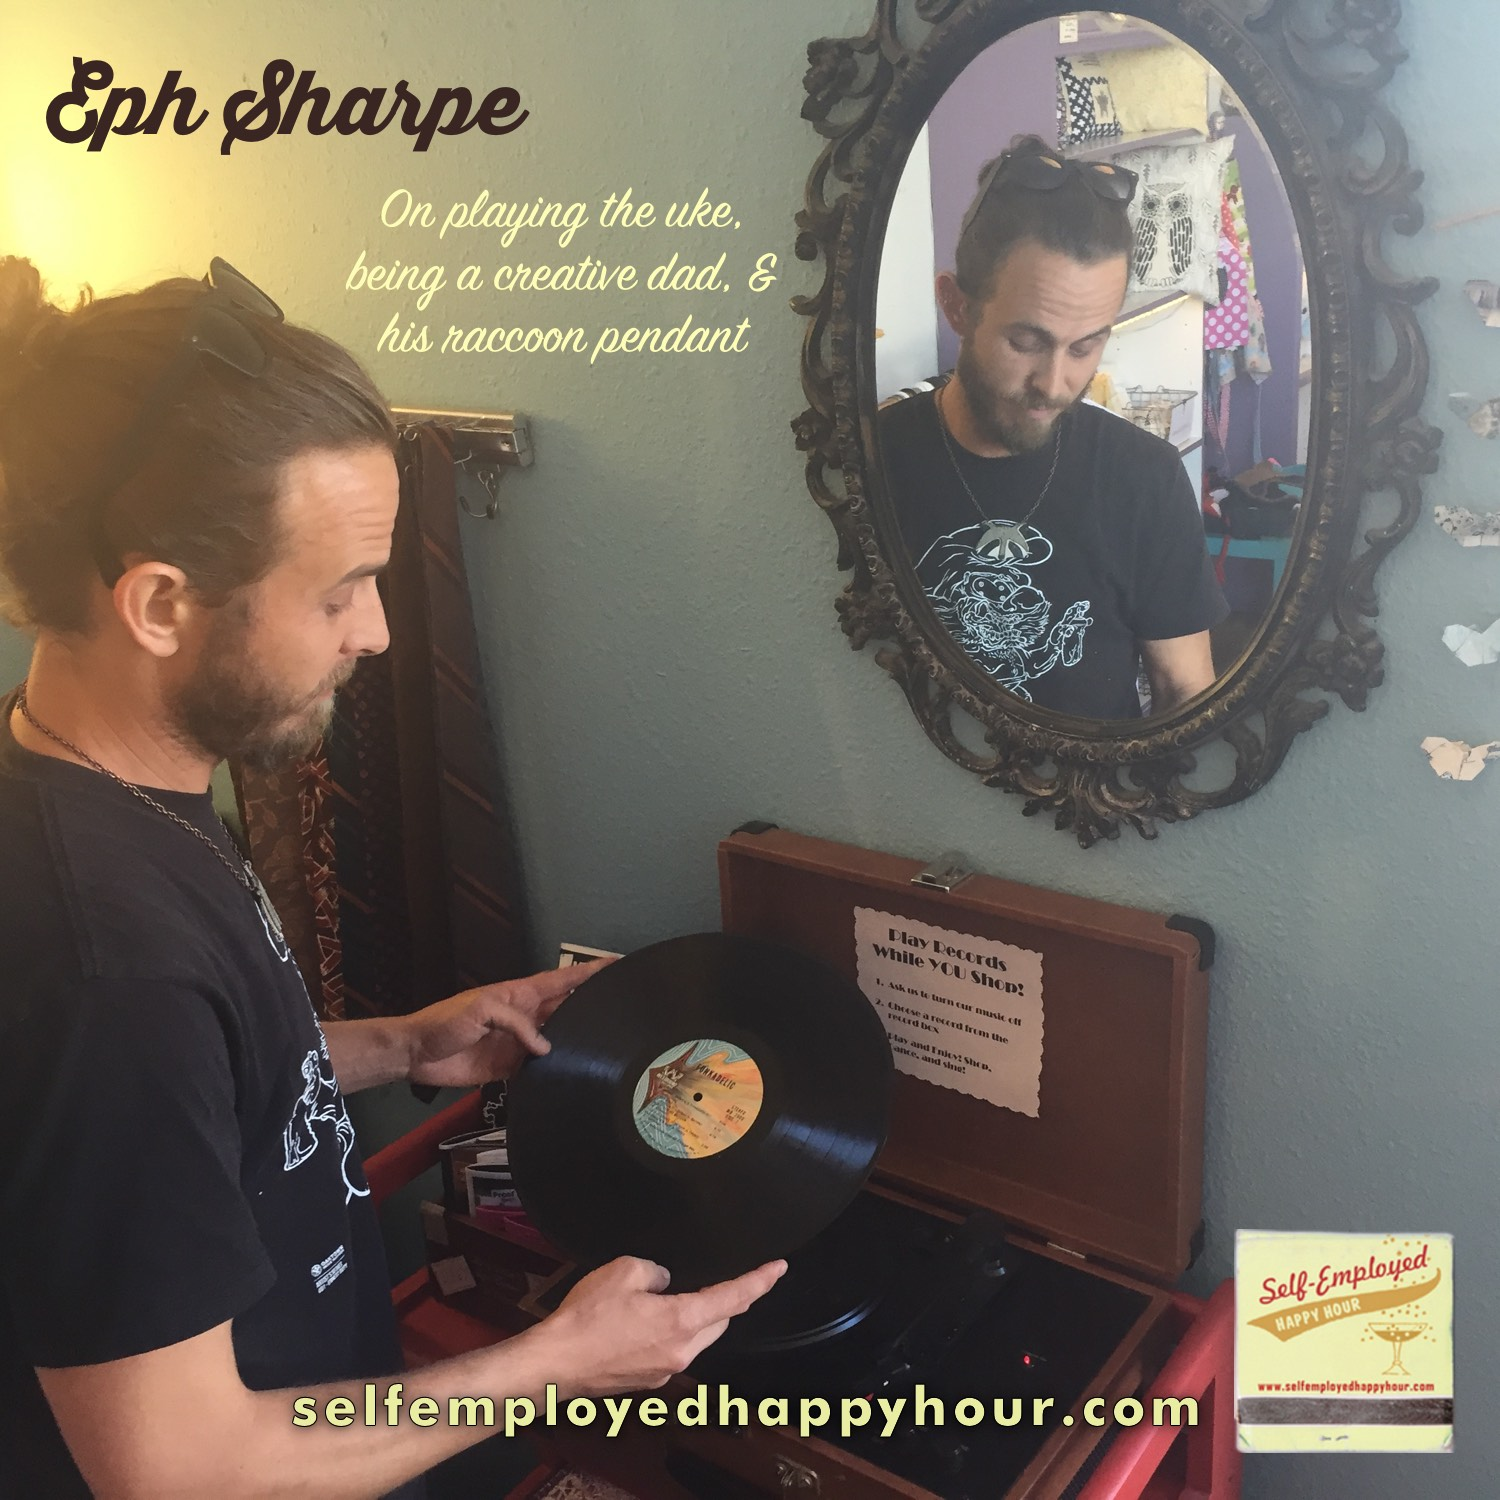 Self-Employed Happy Hour Podcast: Eph Sharpe